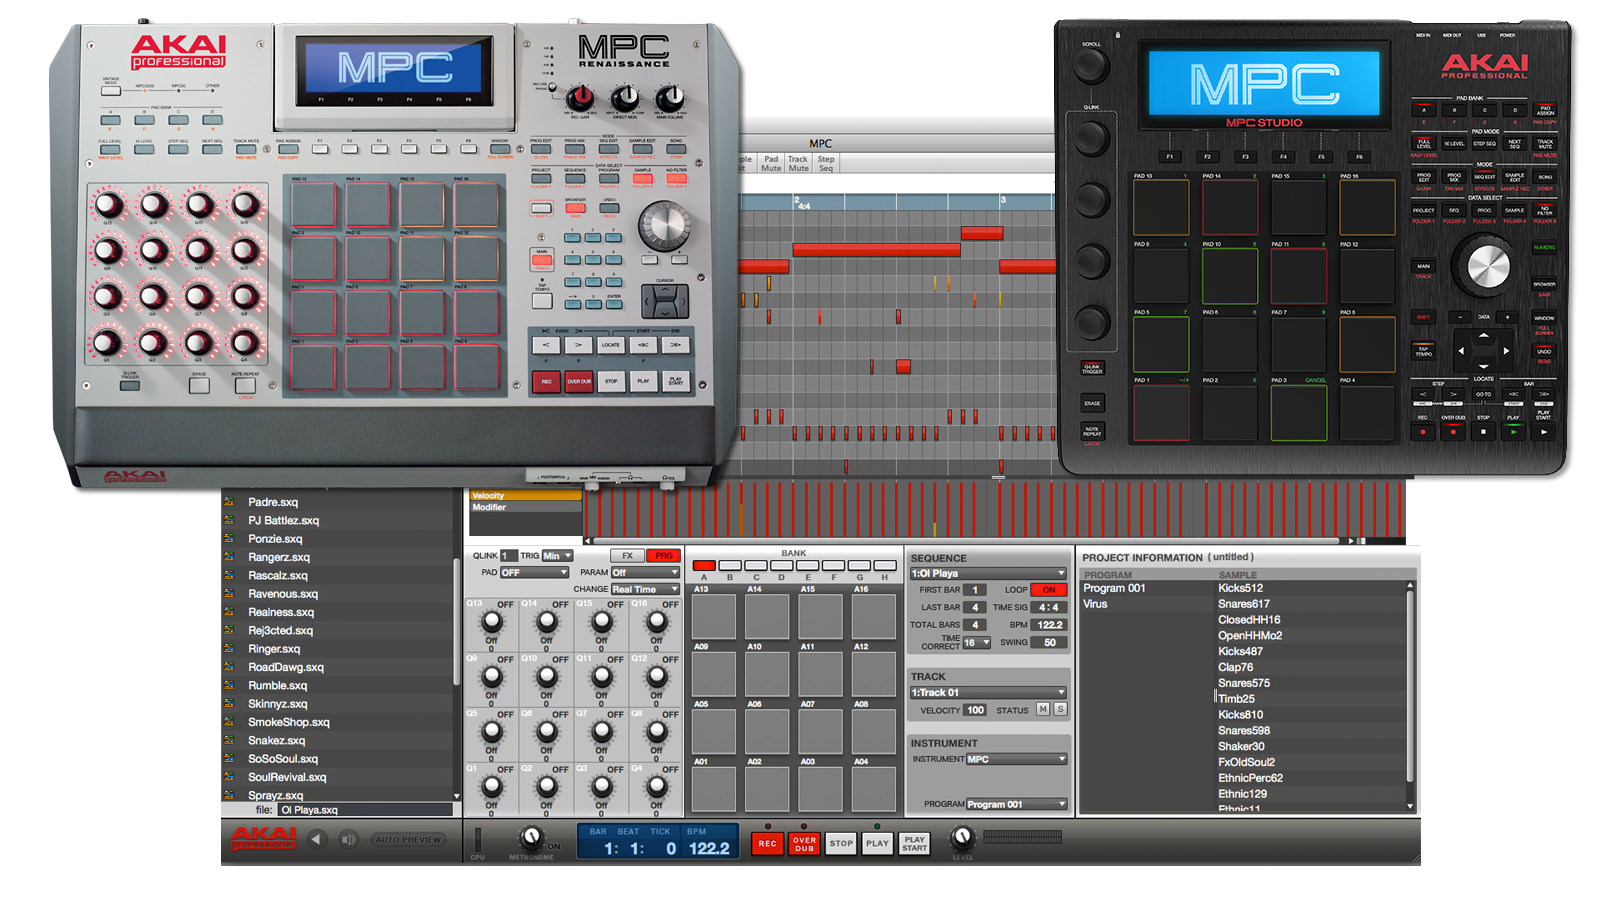 Akai Pro Software Download : akai pro mpc renaissance and studio installing and setting up the expansion pack plugins ~ Hamham.info Haus und Dekorationen